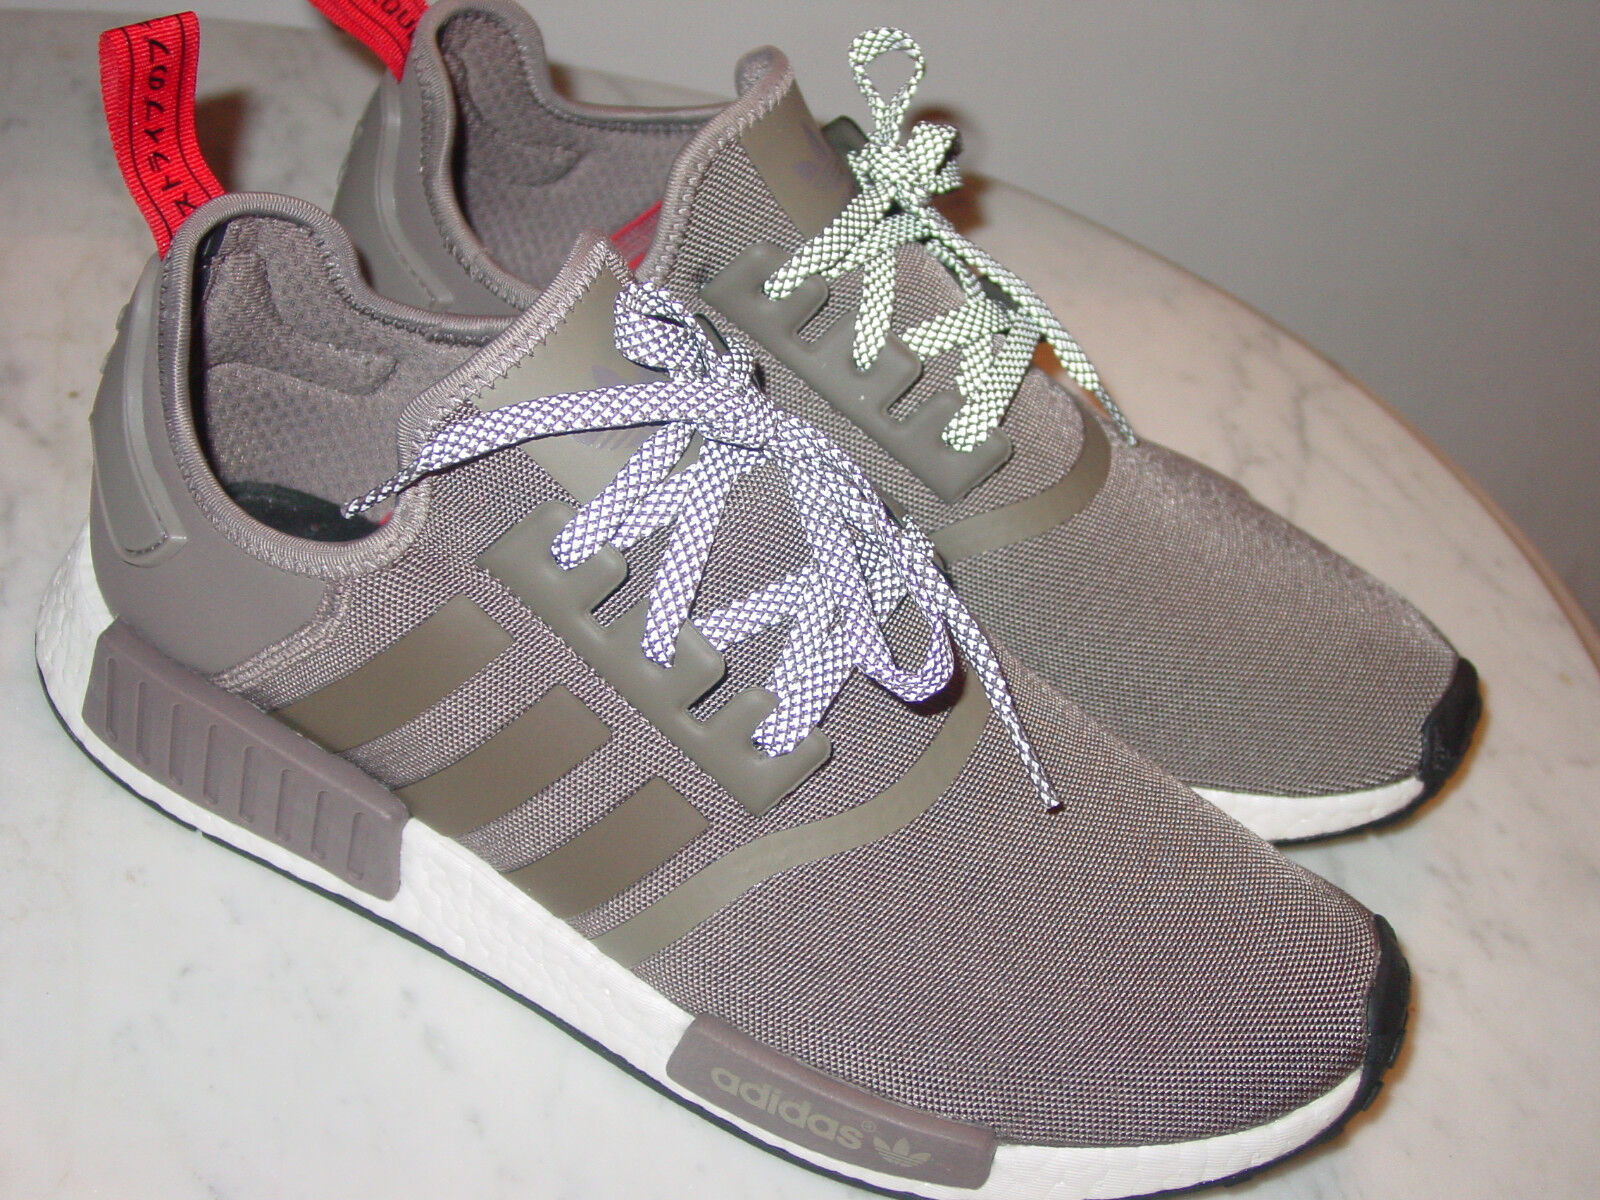 2016 Mens Adidas NMD R1 S81881 Nomad Boost Tech Earth White shoes  Size 12.5